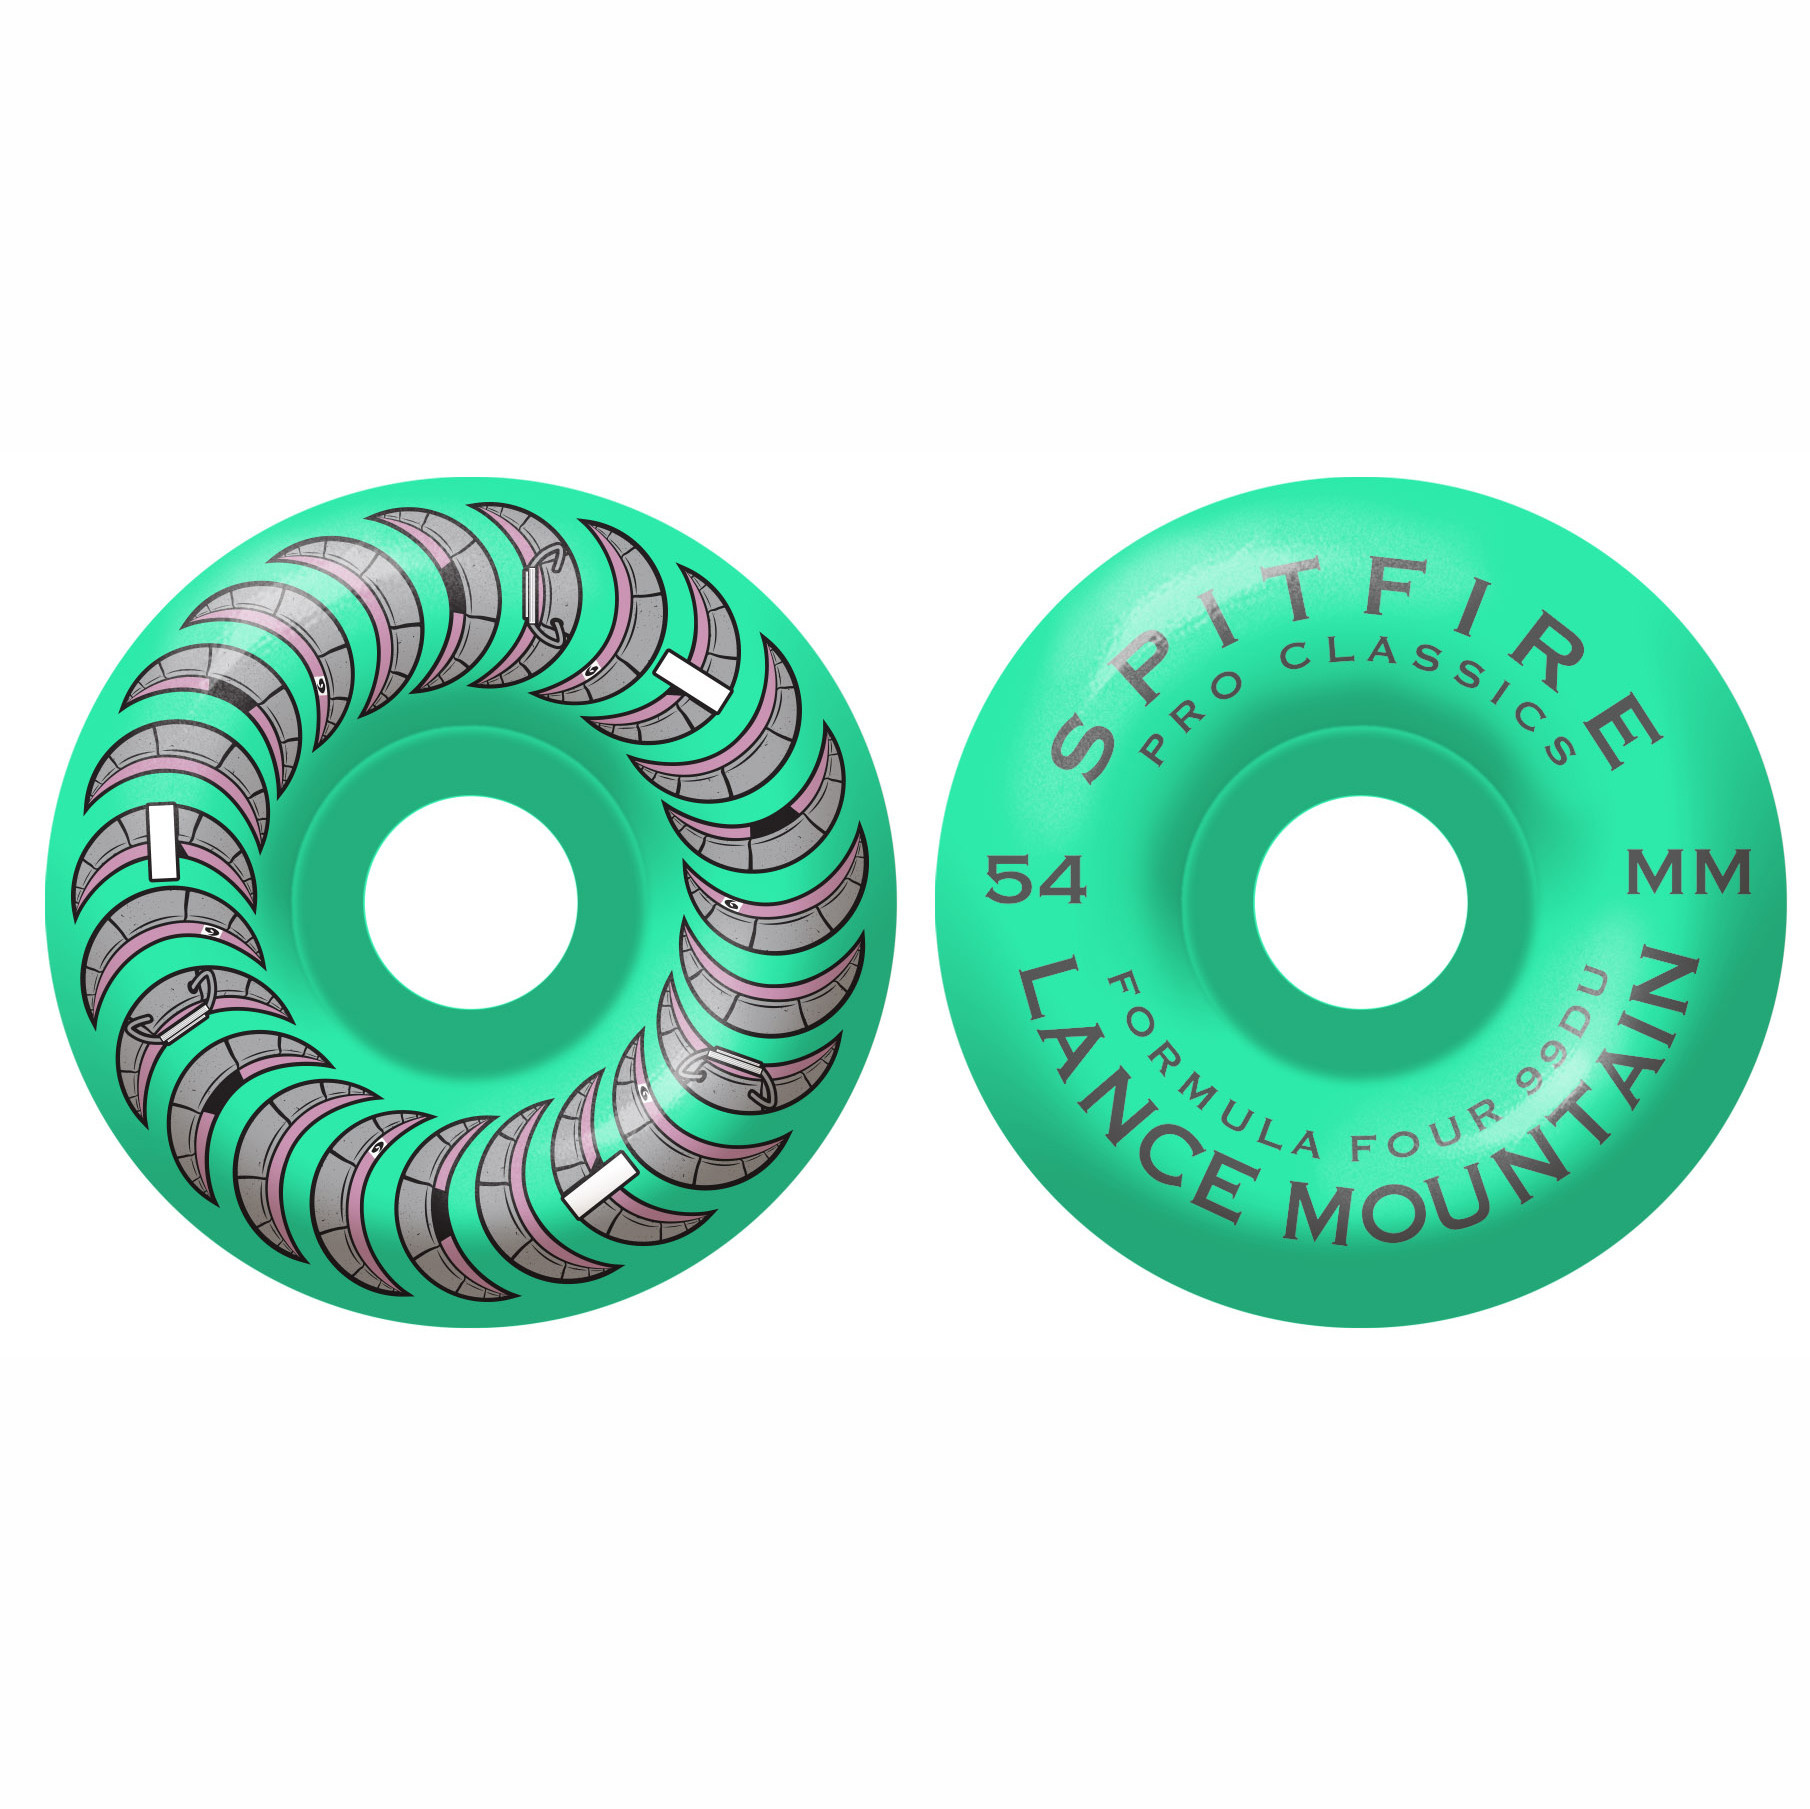 Spitfire Wheels Spitfire F4 99d Lance Turquoise Classic 54mm